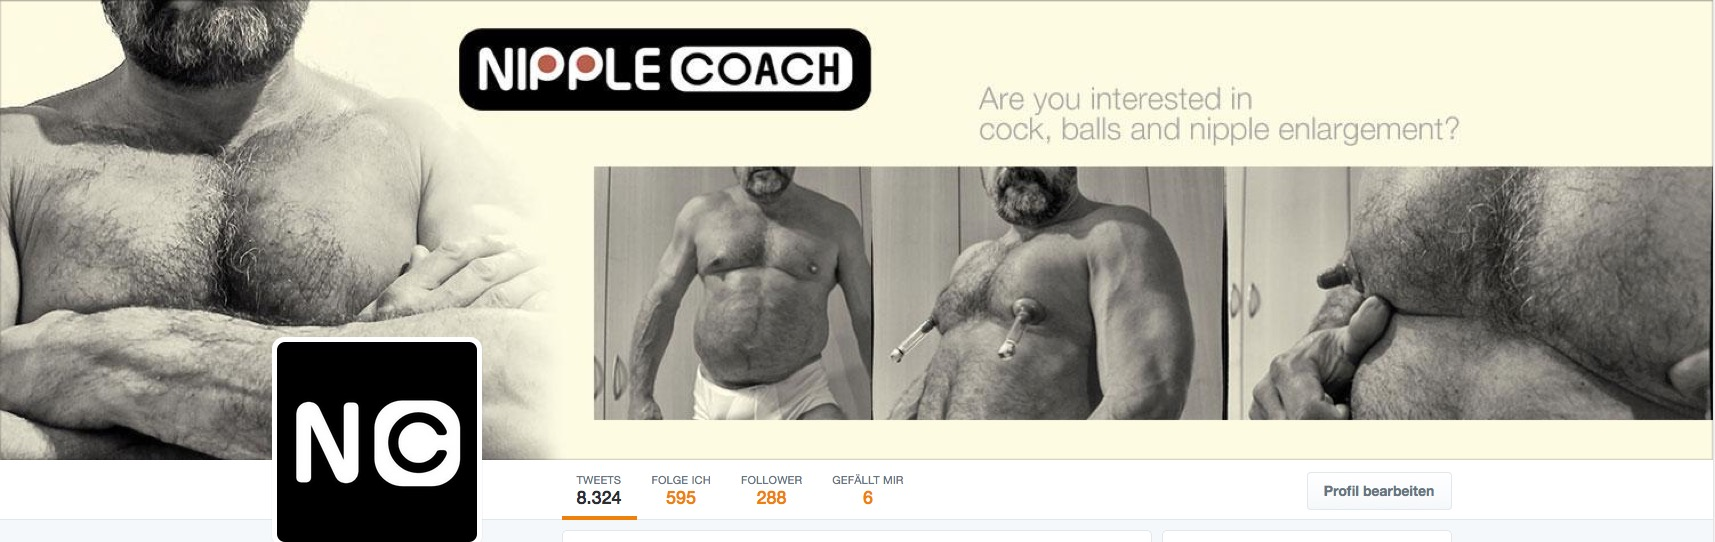 Nipple Coach. Follow datedick nipplecoach on twitter